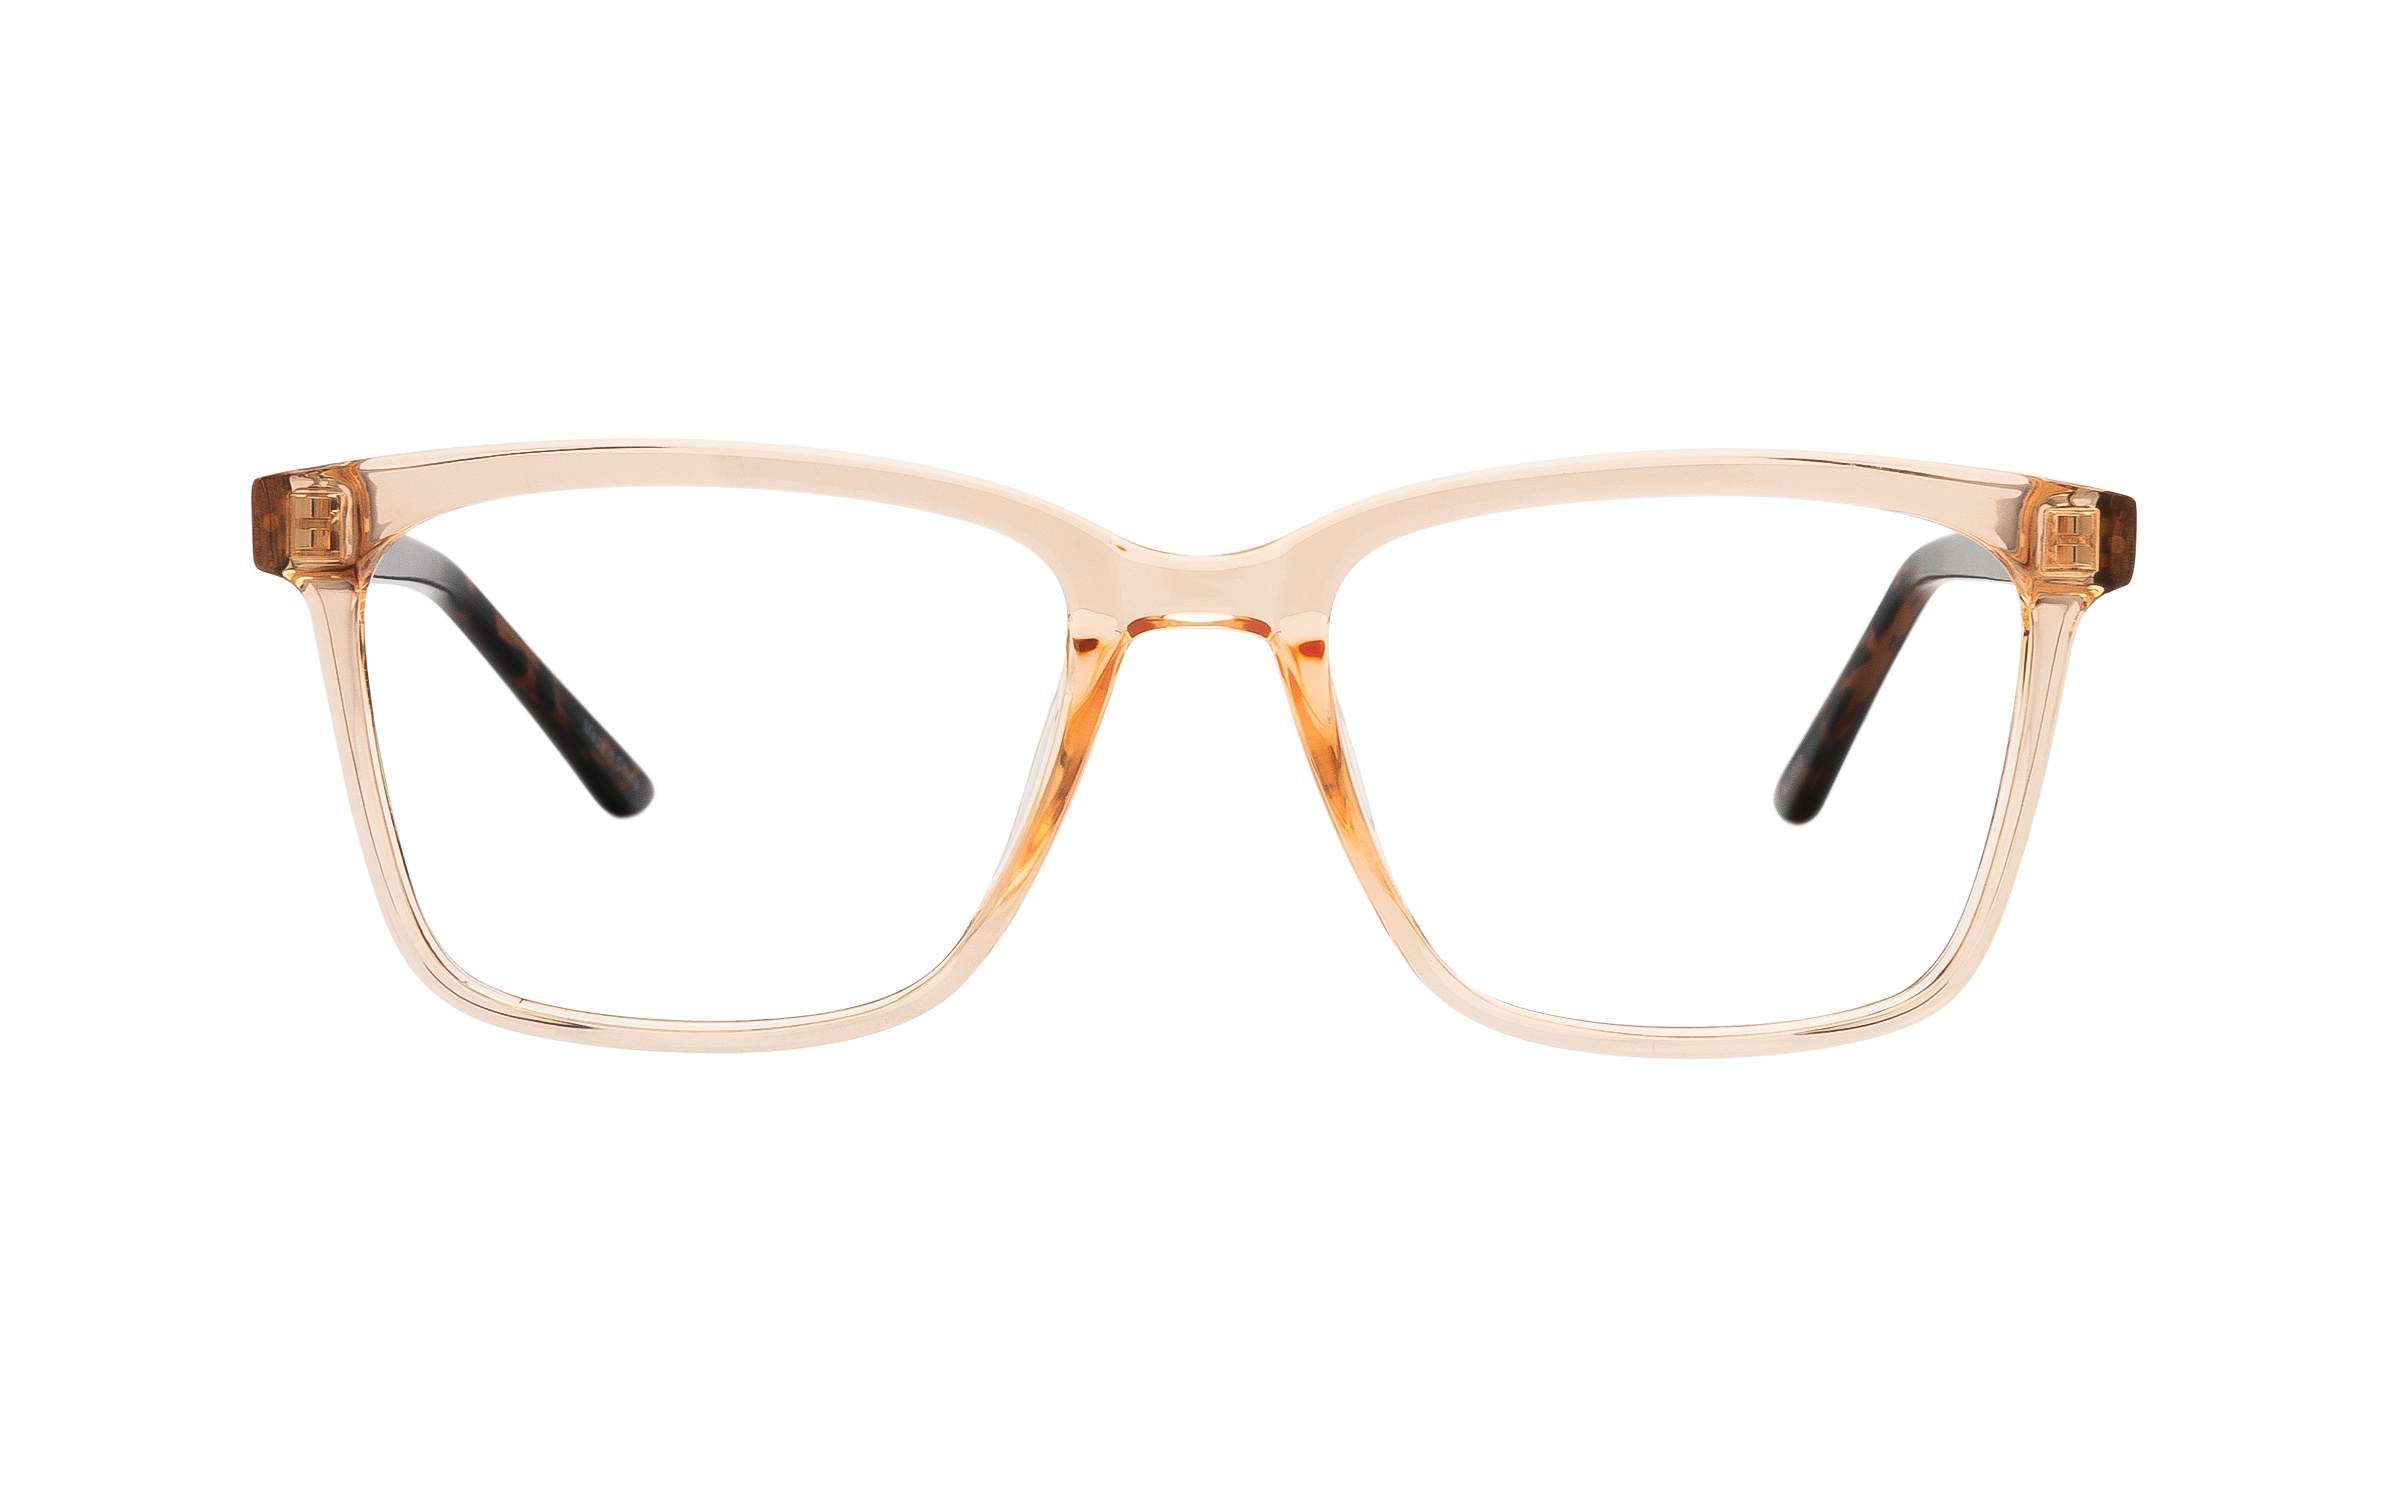 Clearly Basics Burin COL138 C02 (51) Eyeglasses and Frame in Peach Pink/Orange - Online